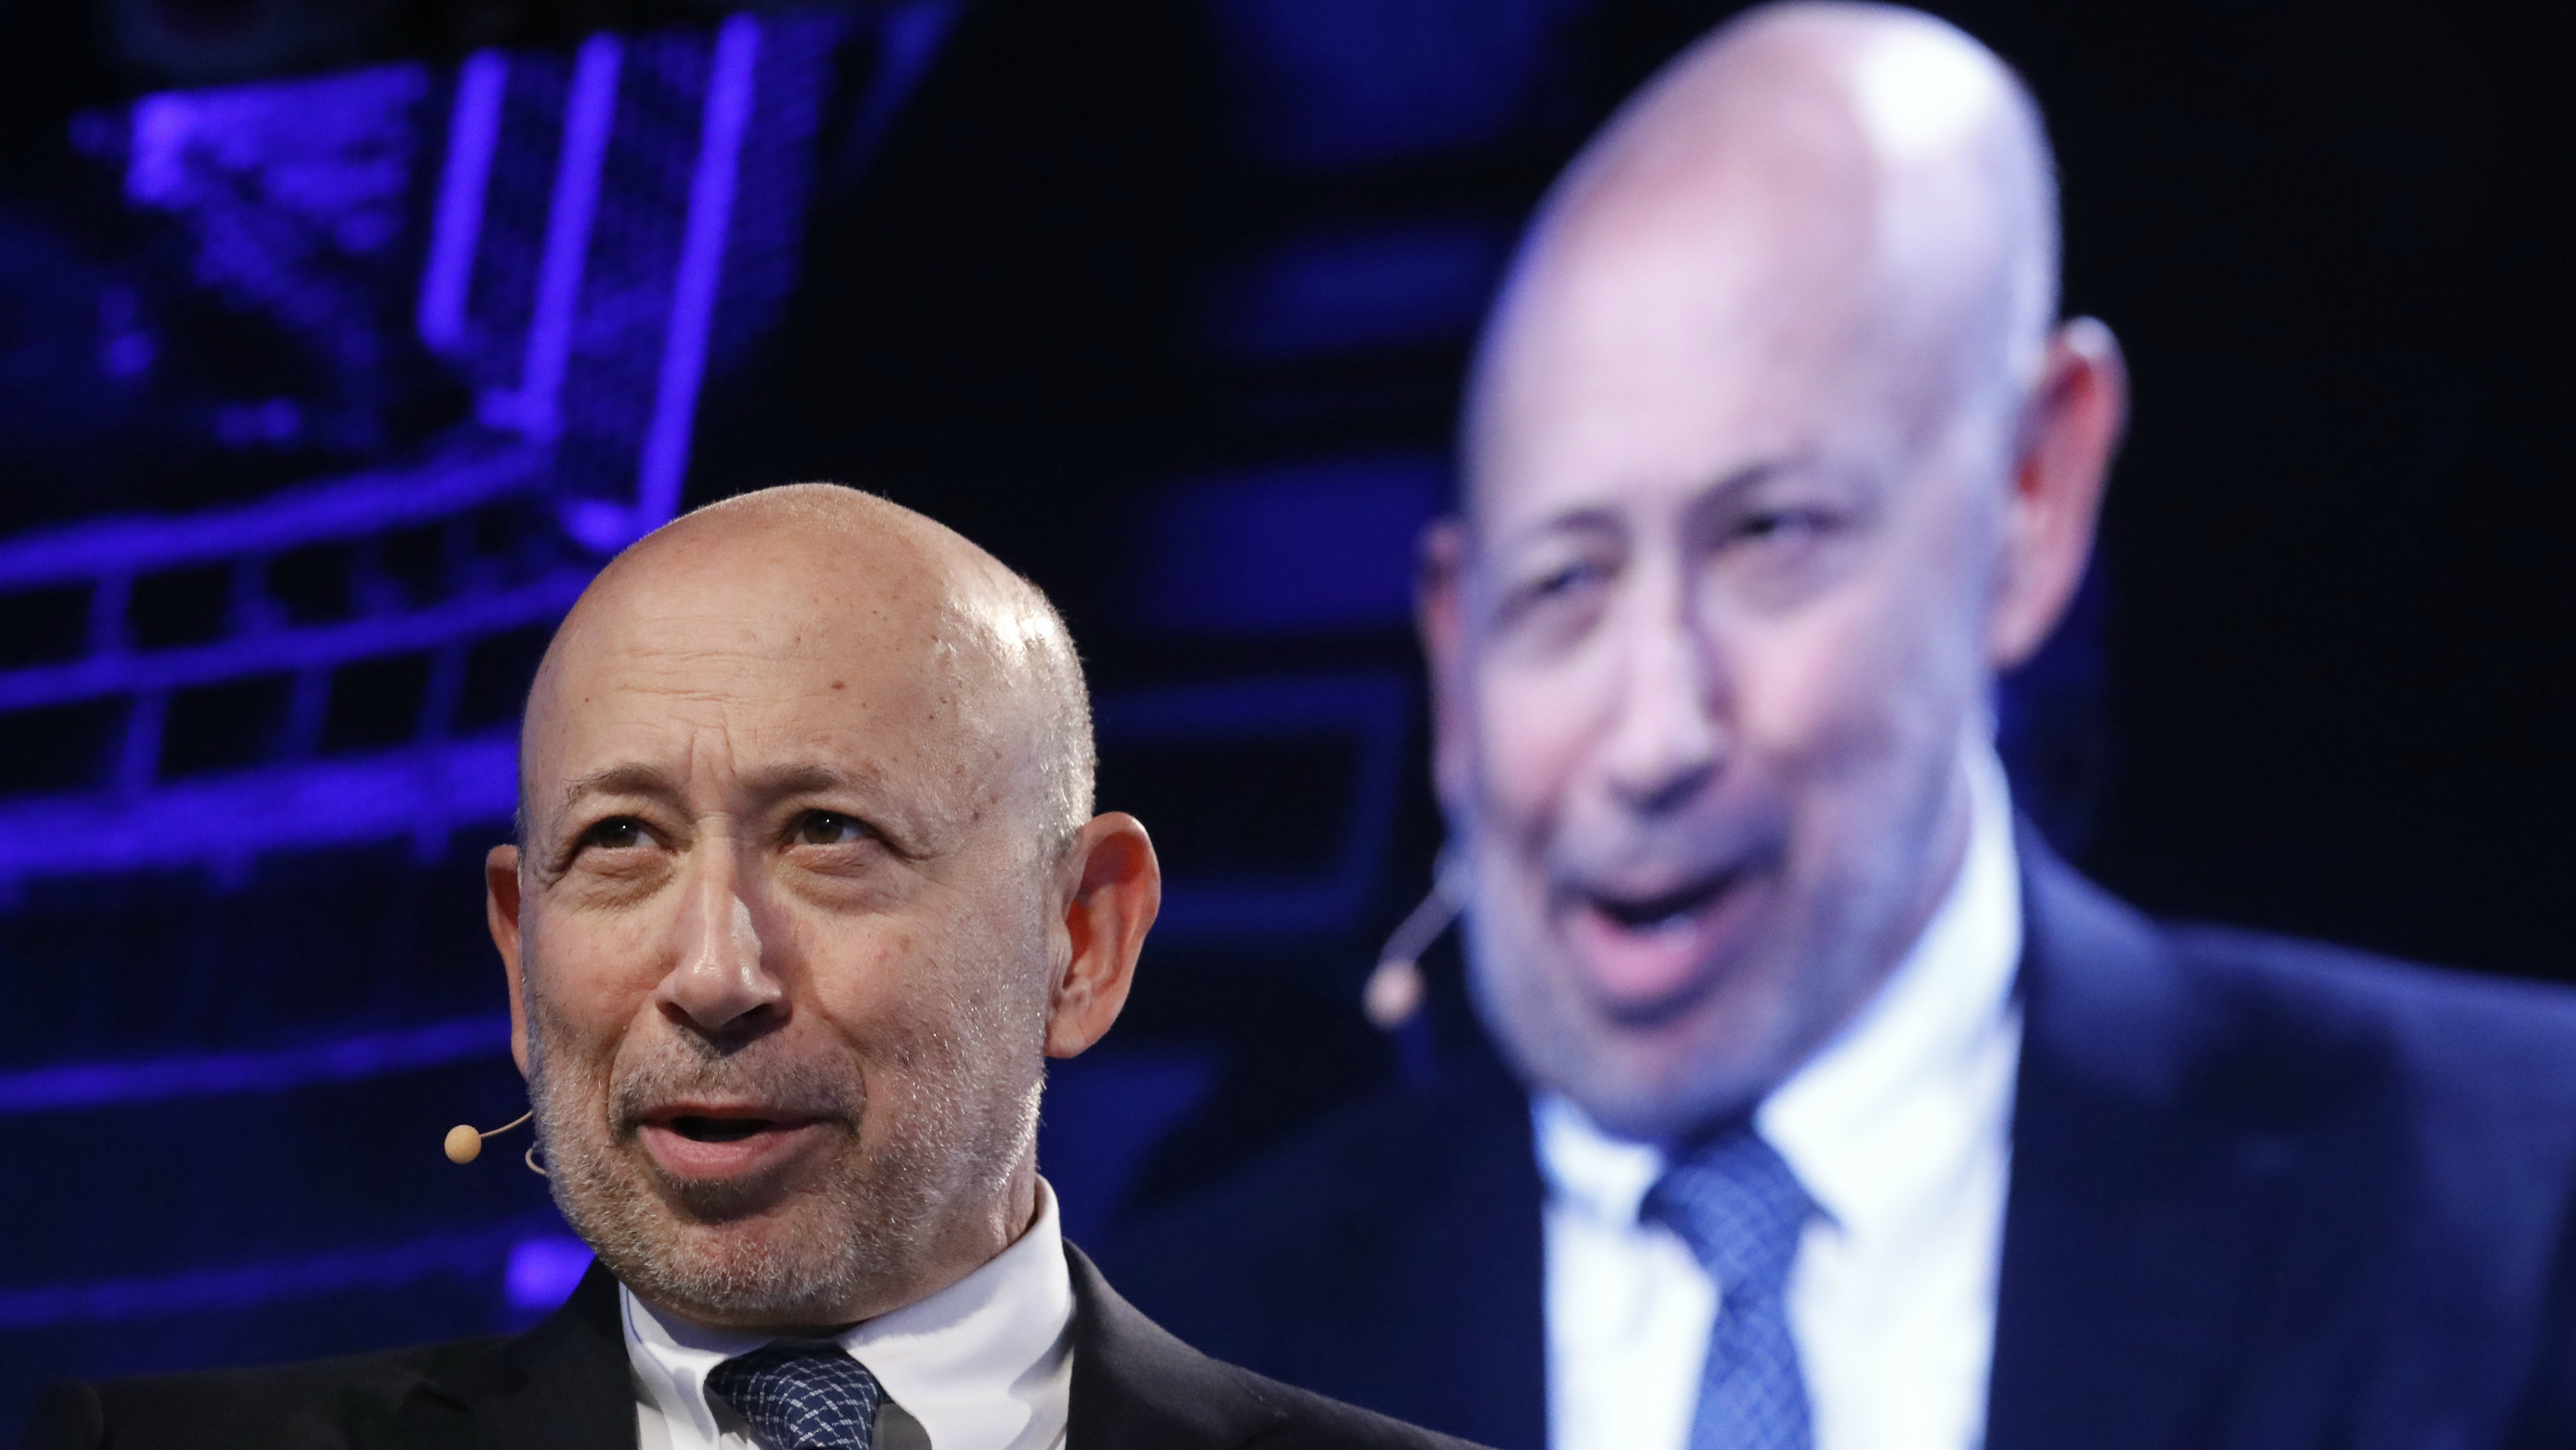 Goldman Sachs Chairman and CEO Lloyd Blankfein speaks at the Bloomberg Global Business Forum in New York, U.S., September 20, 2017.